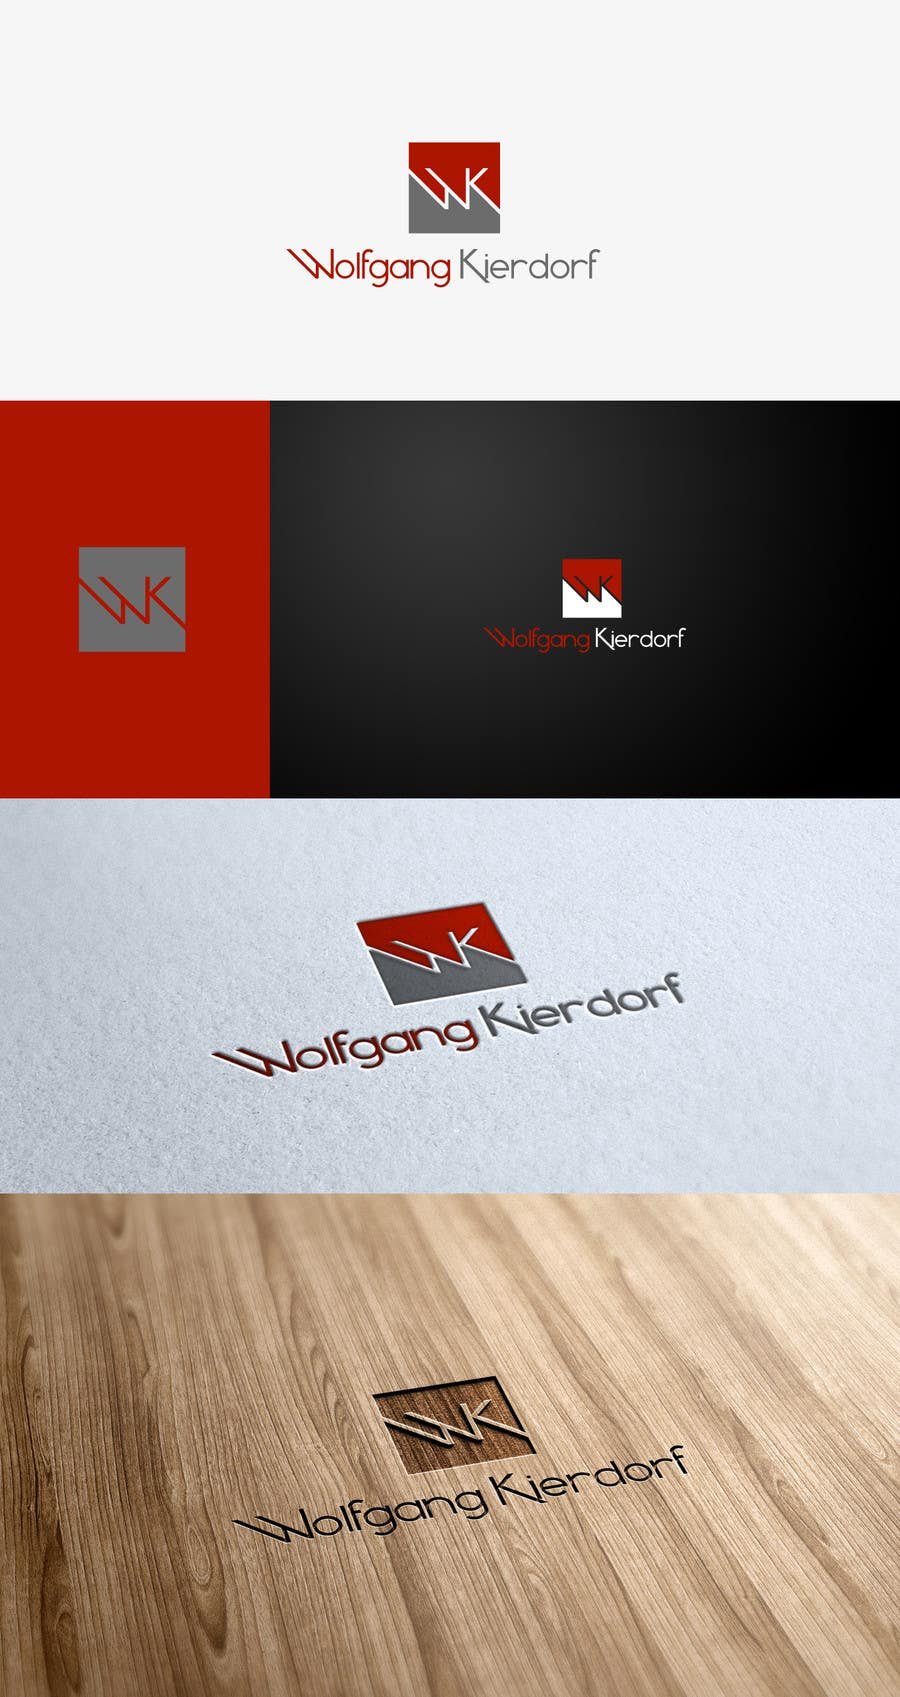 Proposition n°                                        7                                      du concours                                         Logo Design for Personal Brand Logo: Wolfgang Kierdorf